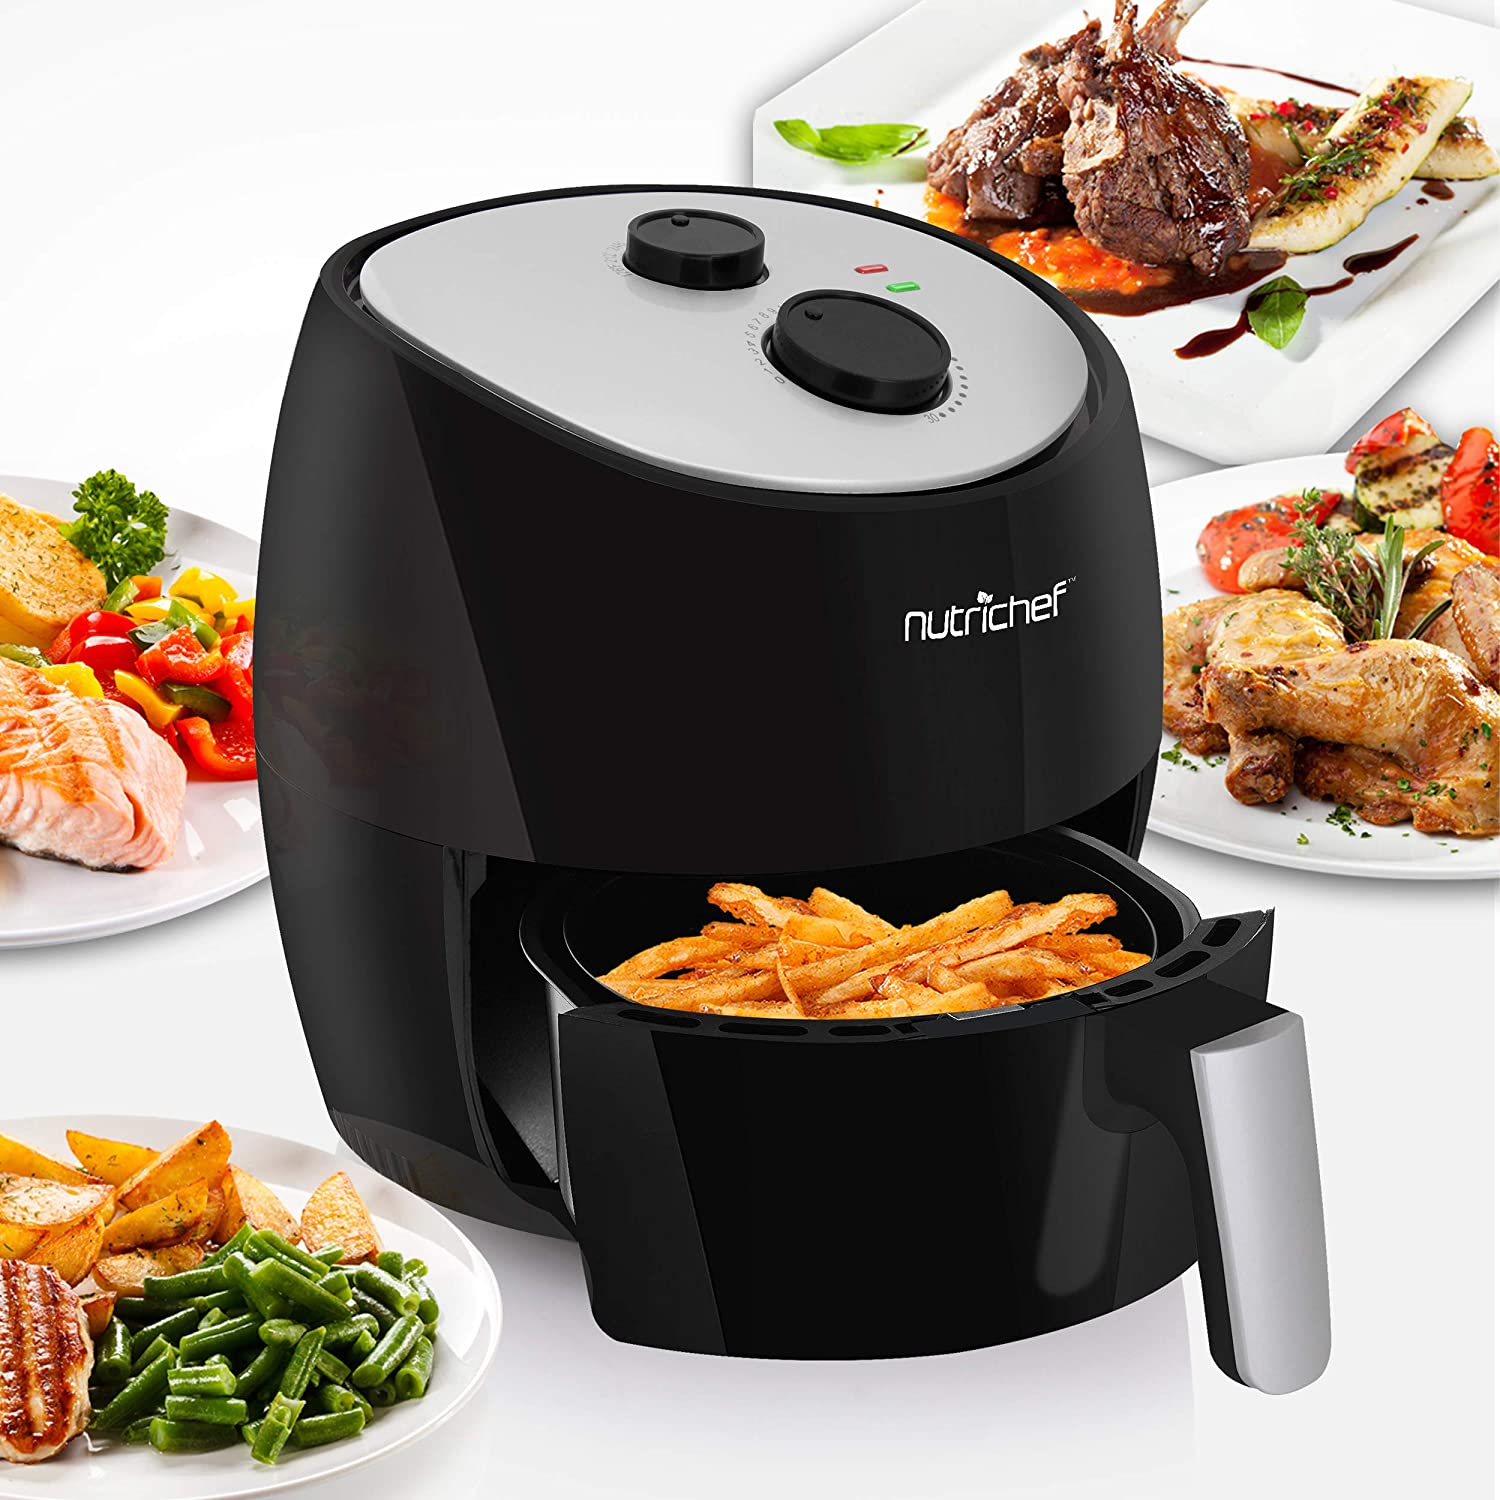 Electric Air Fryer Multi Cooker - 1300 Watt High Power Oilless Kitchen Hot Air Frying Oven Toaster Convection Cooker- 3L NonStick Teflon Basket - NutriChef PKAIRFR22